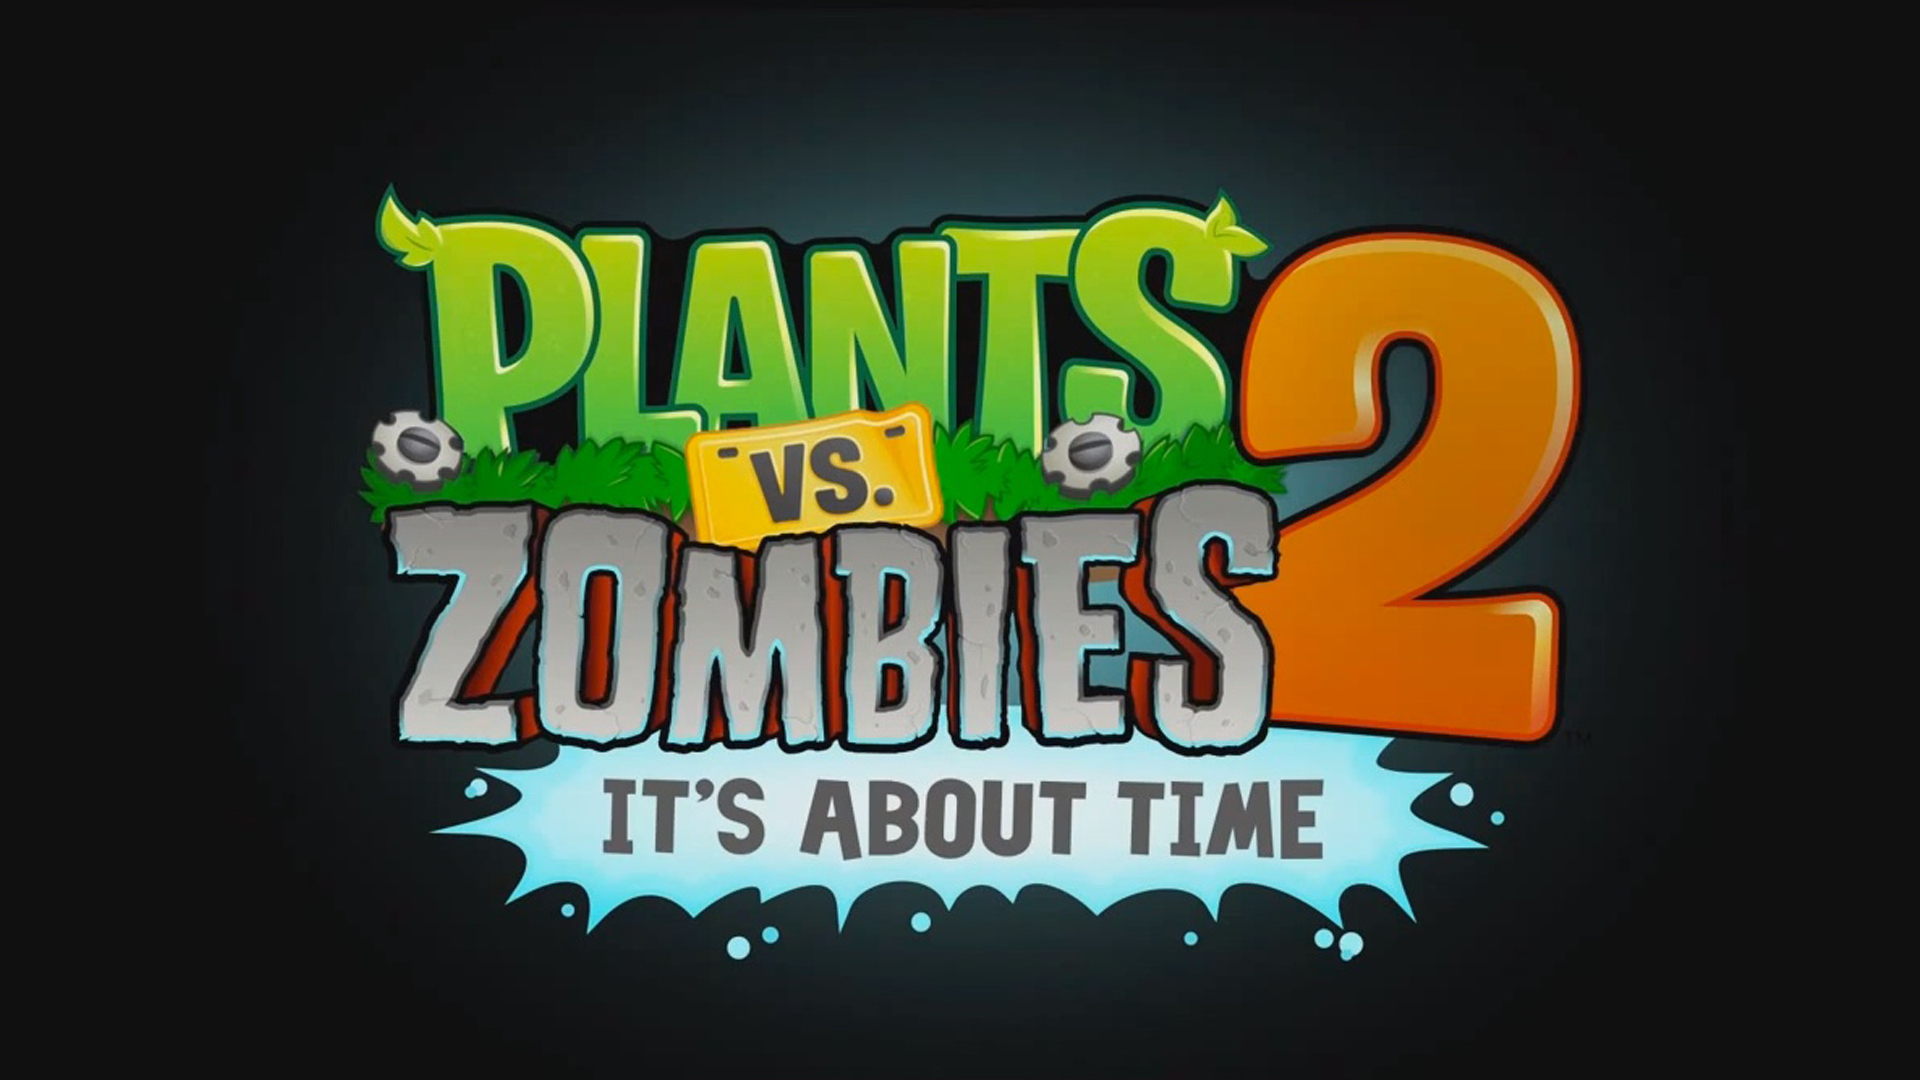 Free Download Plants Vs Zombies 2 Its About Time Hd Wallpaper Game Wallpapers 1920x1080 For Your Desktop Mobile Tablet Explore 46 Plants Vs Zombies Hd Wallpaper Plants Vs Zombies